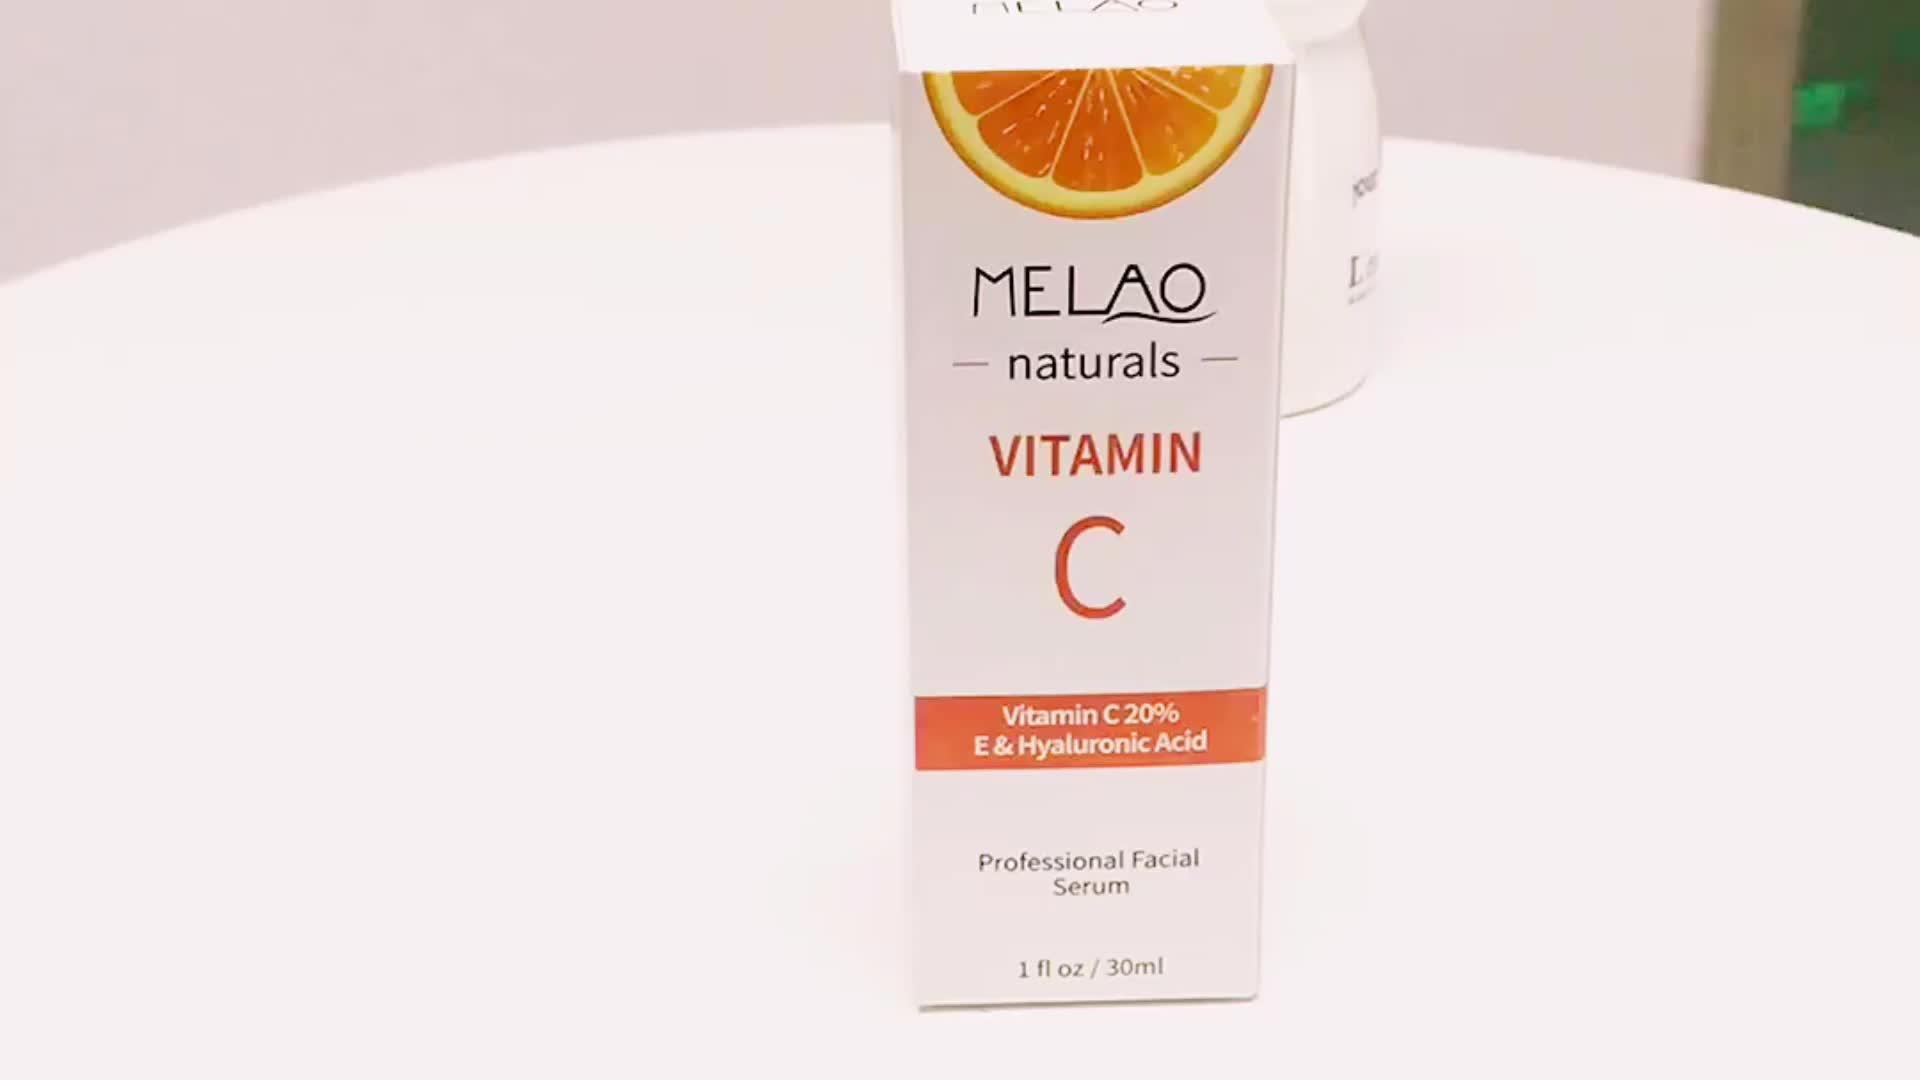 MOQ120 100% pure Skin Care ที่ดีที่สุด Lightening Whitening collagen Hyaluronic Acid Vitamin C Serum